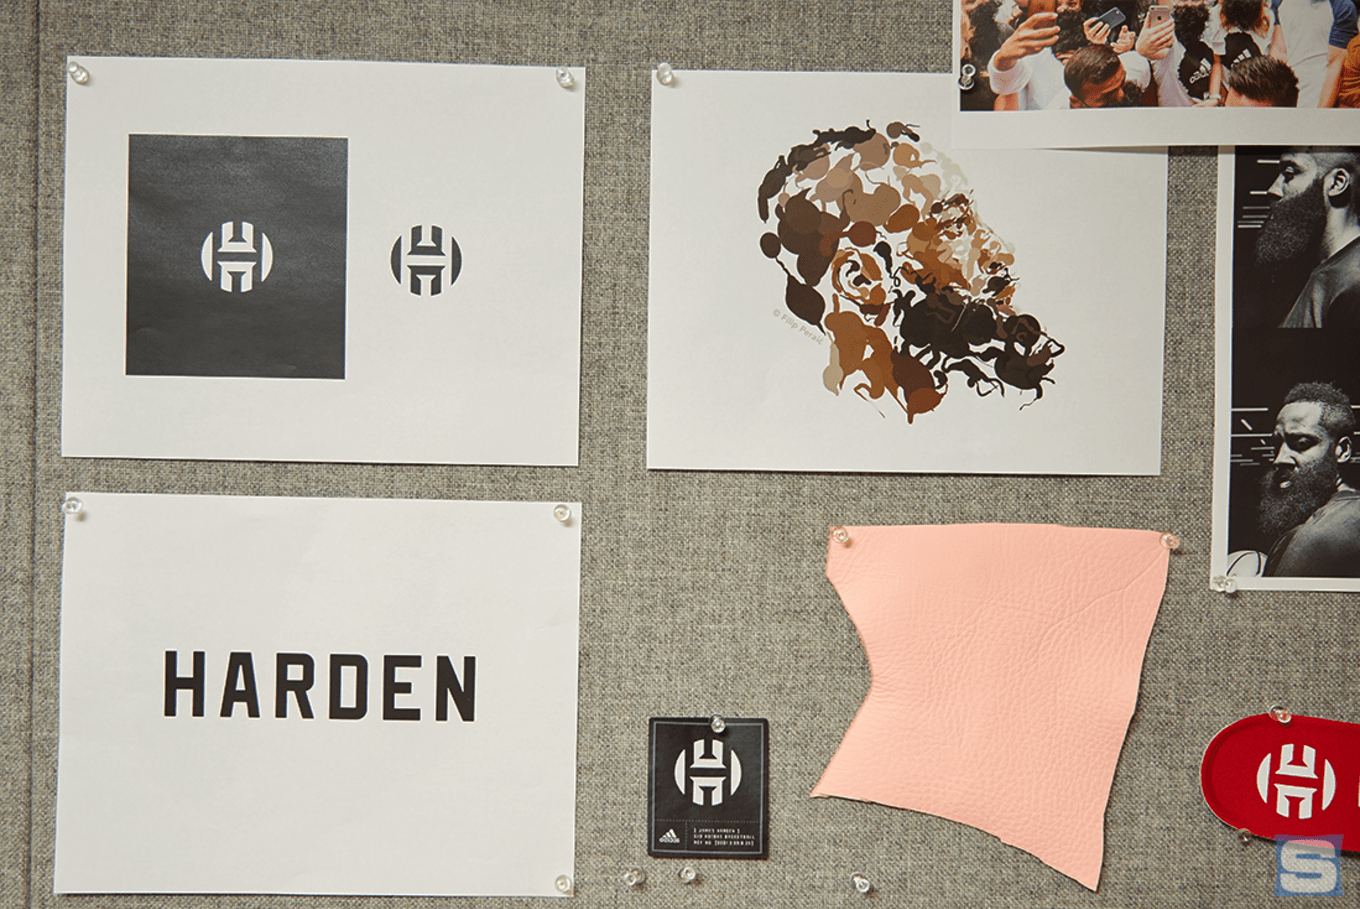 06339643f148 James Harden specifically requested a subtle logo.